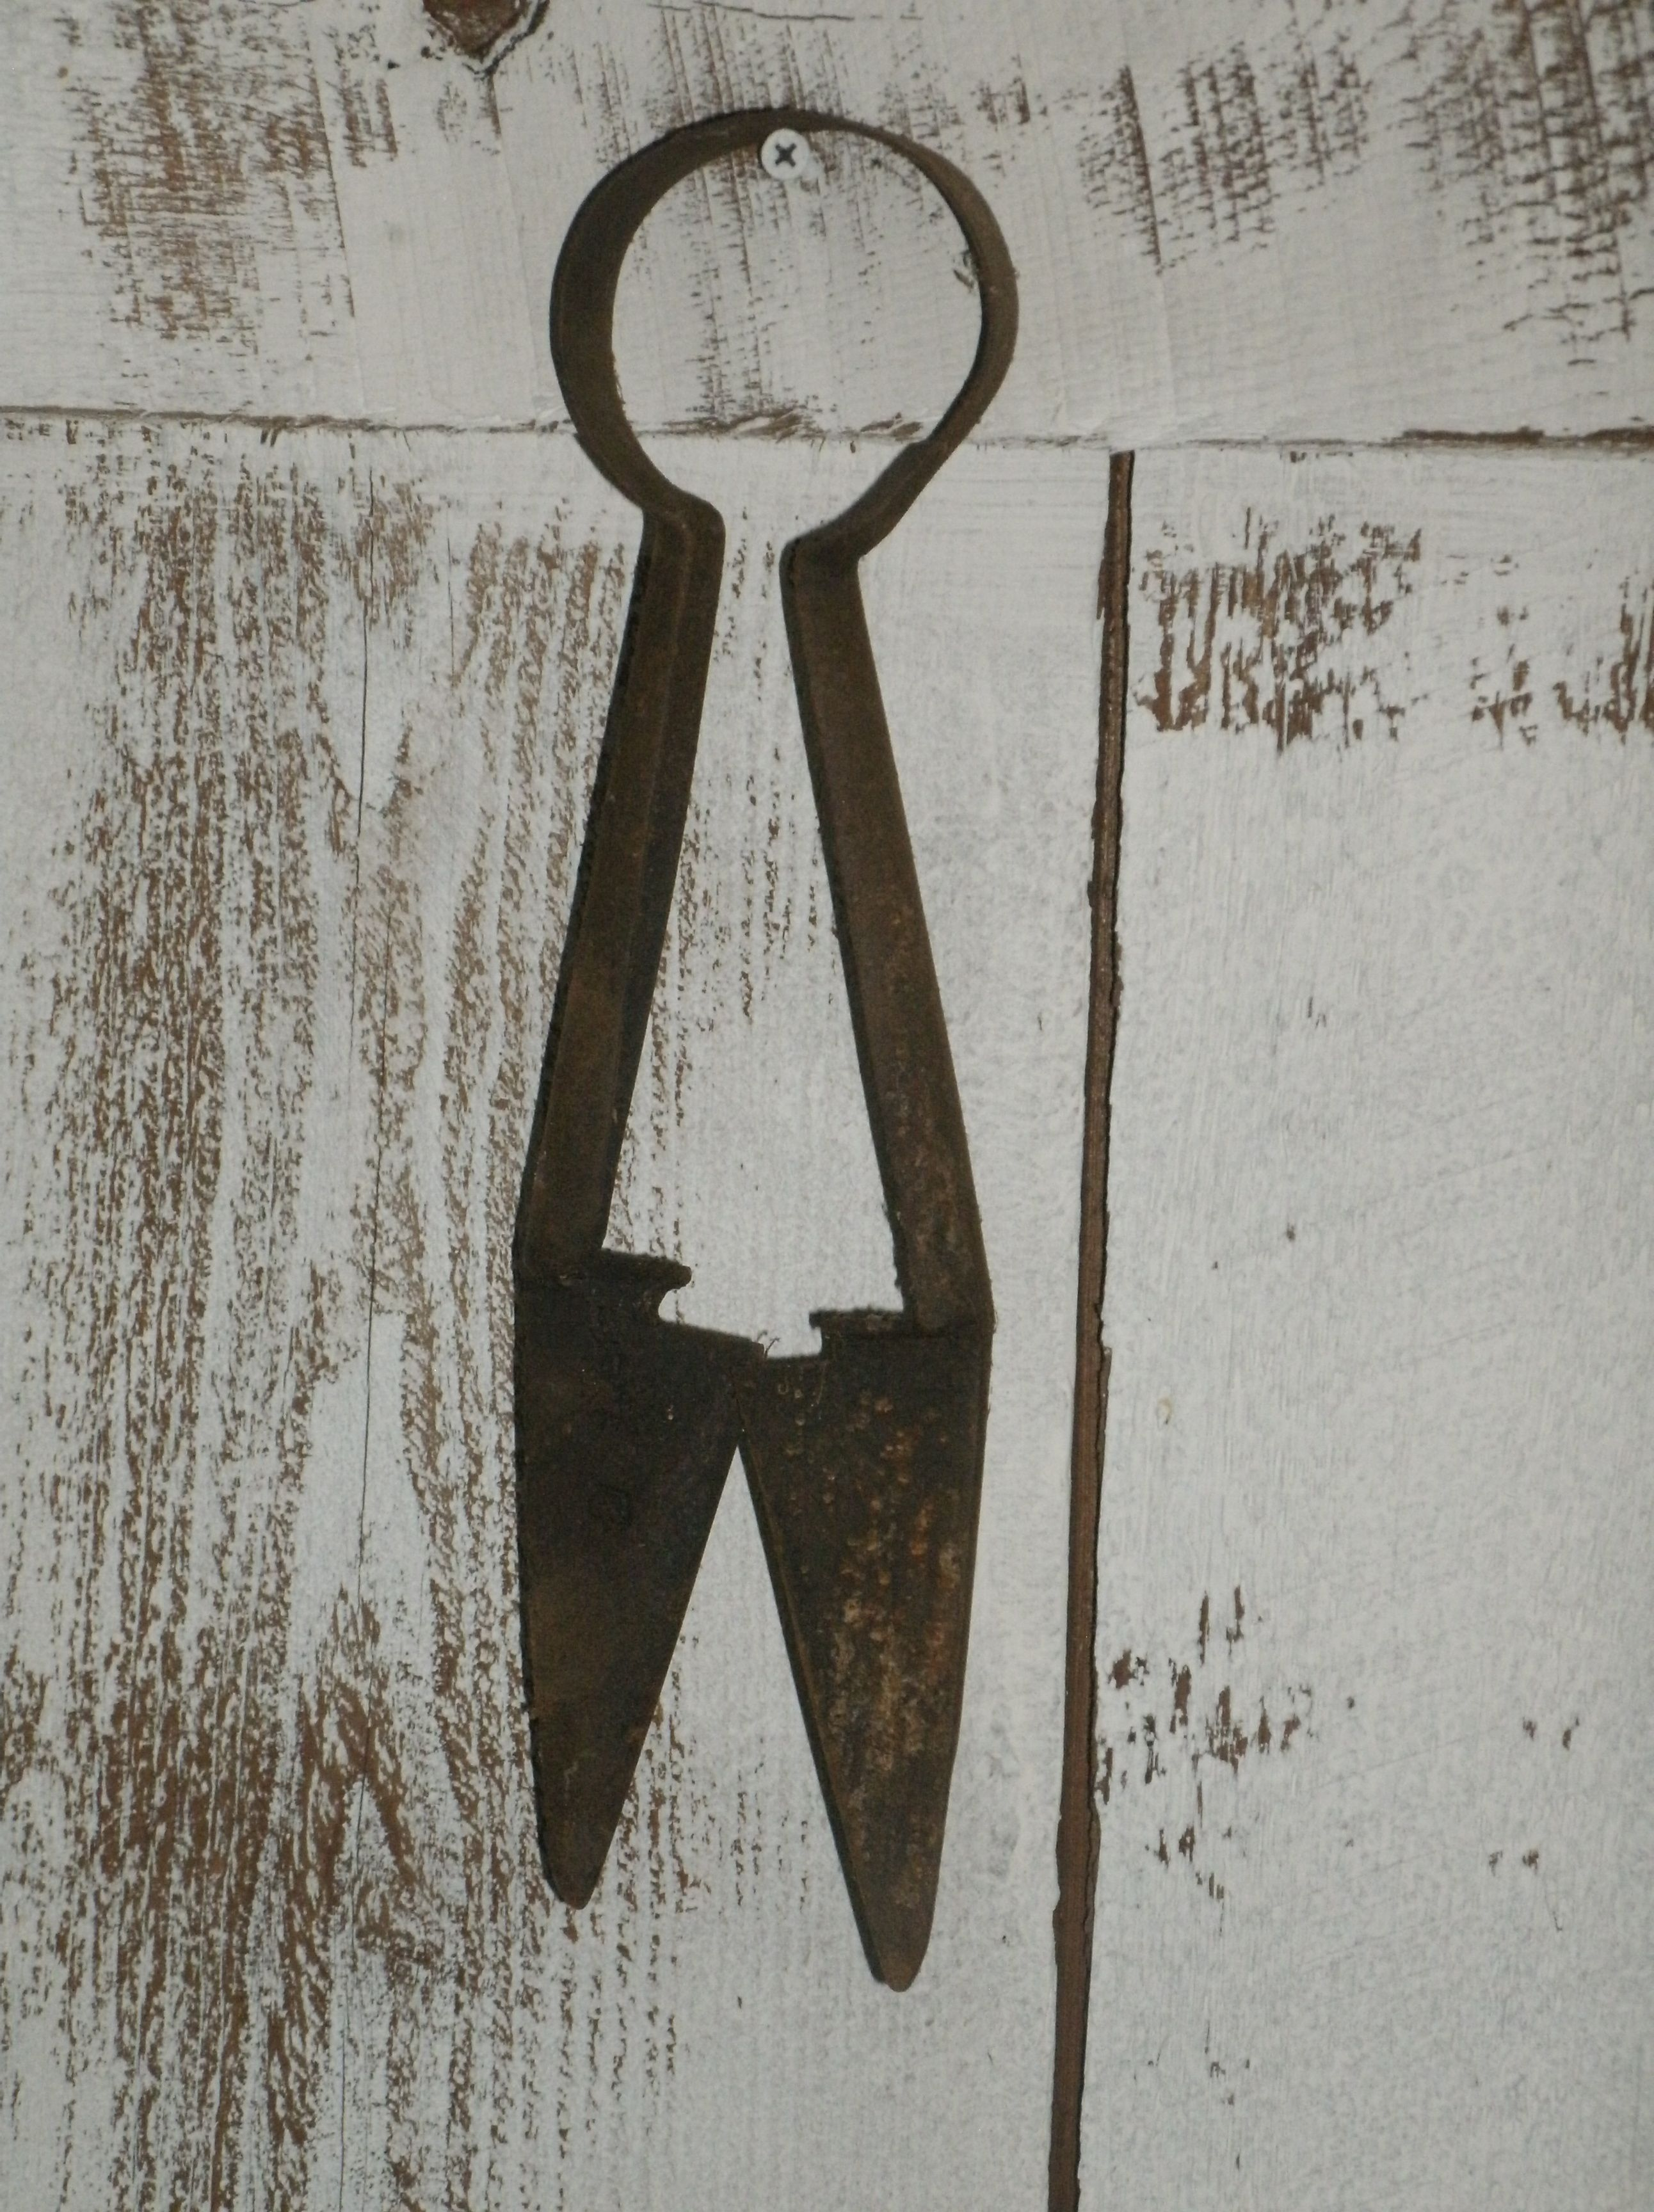 My Antique Sheep Shears With Images